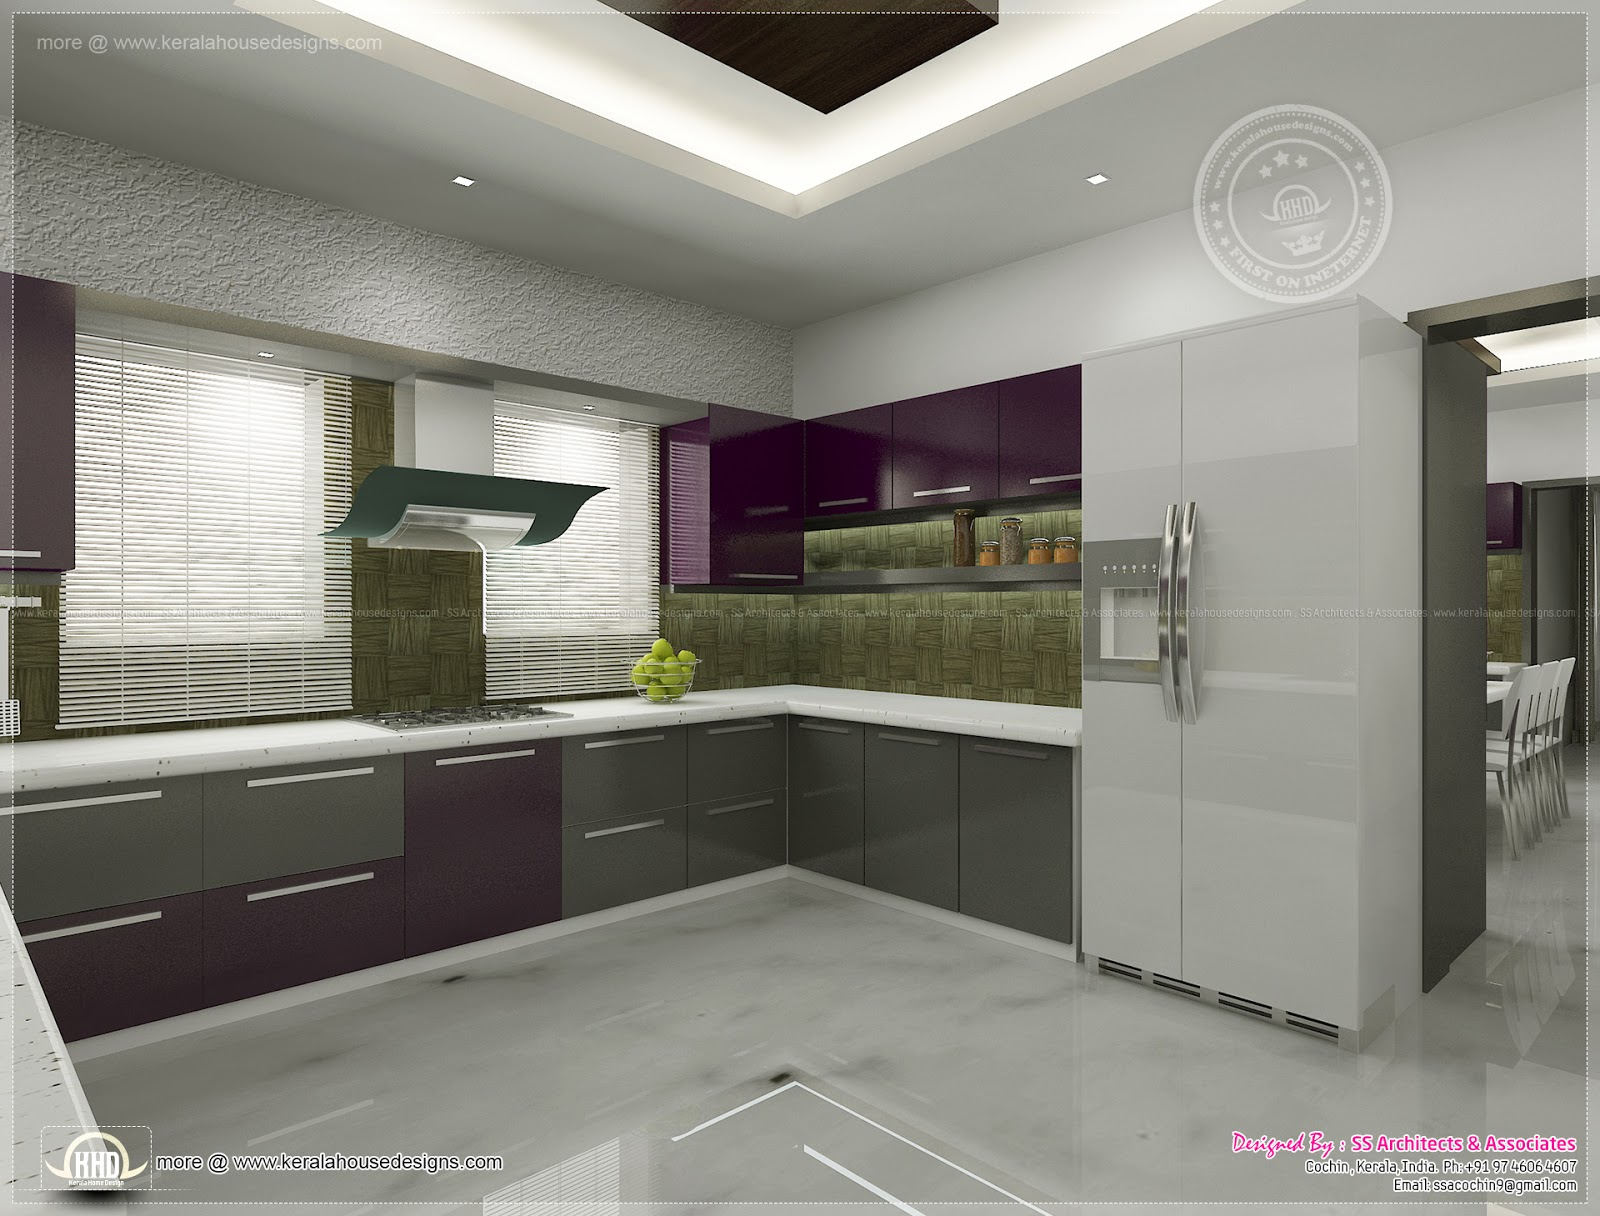 Kitchen interior views by ss architects cochin kerala for Home plans with interior photos